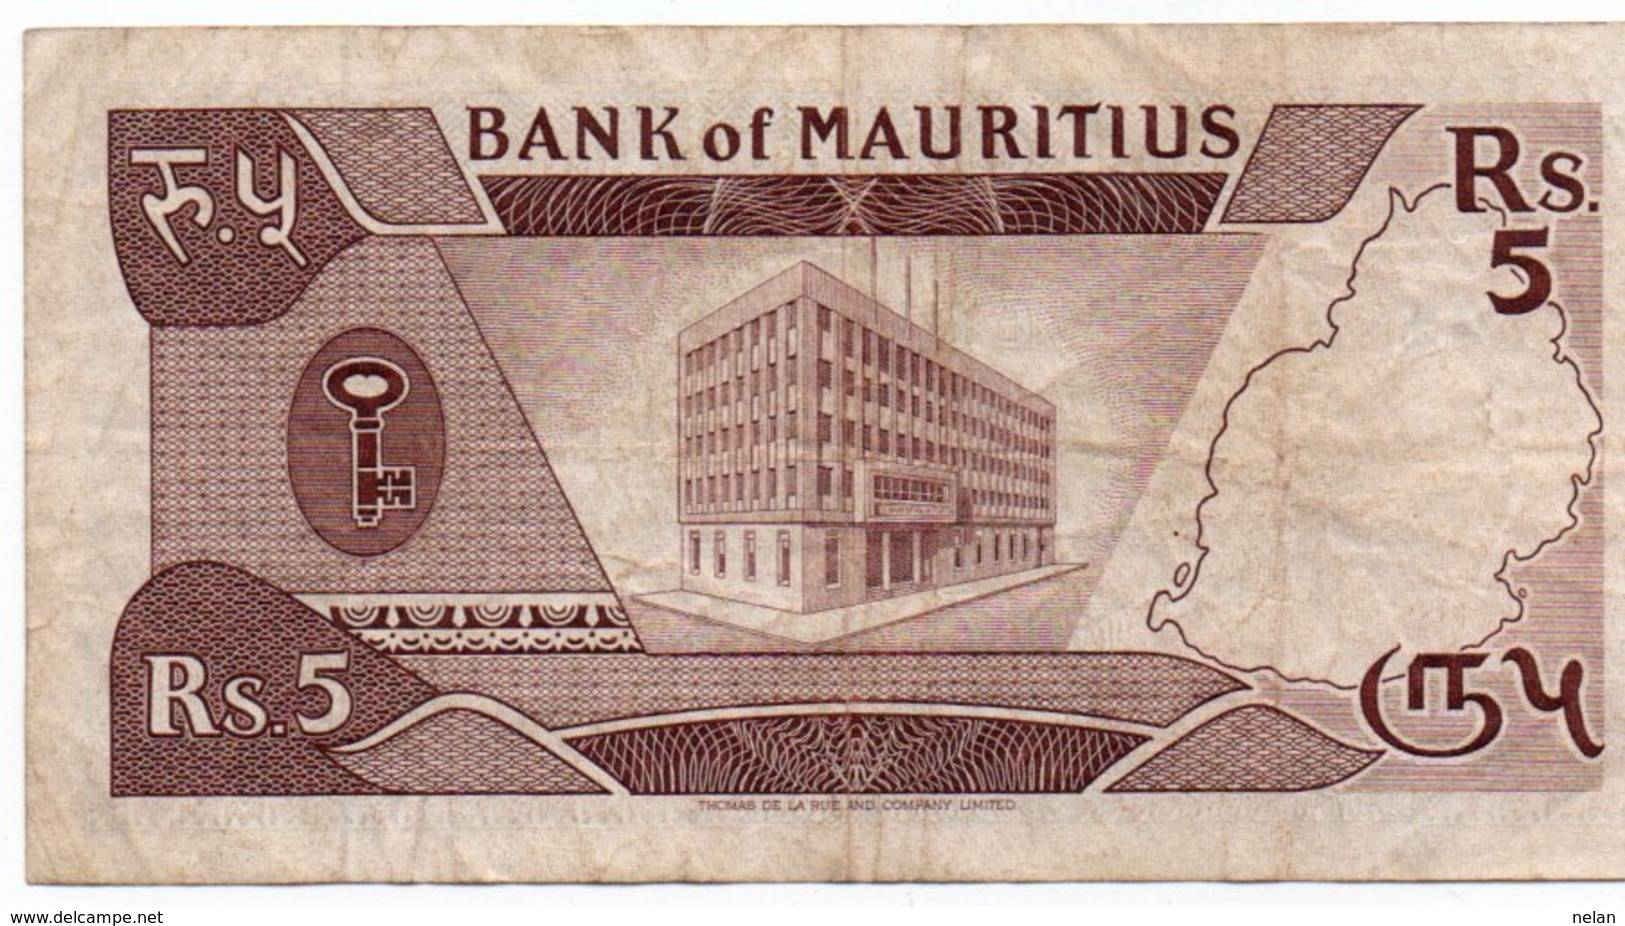 ISOLE MAURITIUS 5 RUPEES 1985 P-34 (SERIE 122822) - Maurice